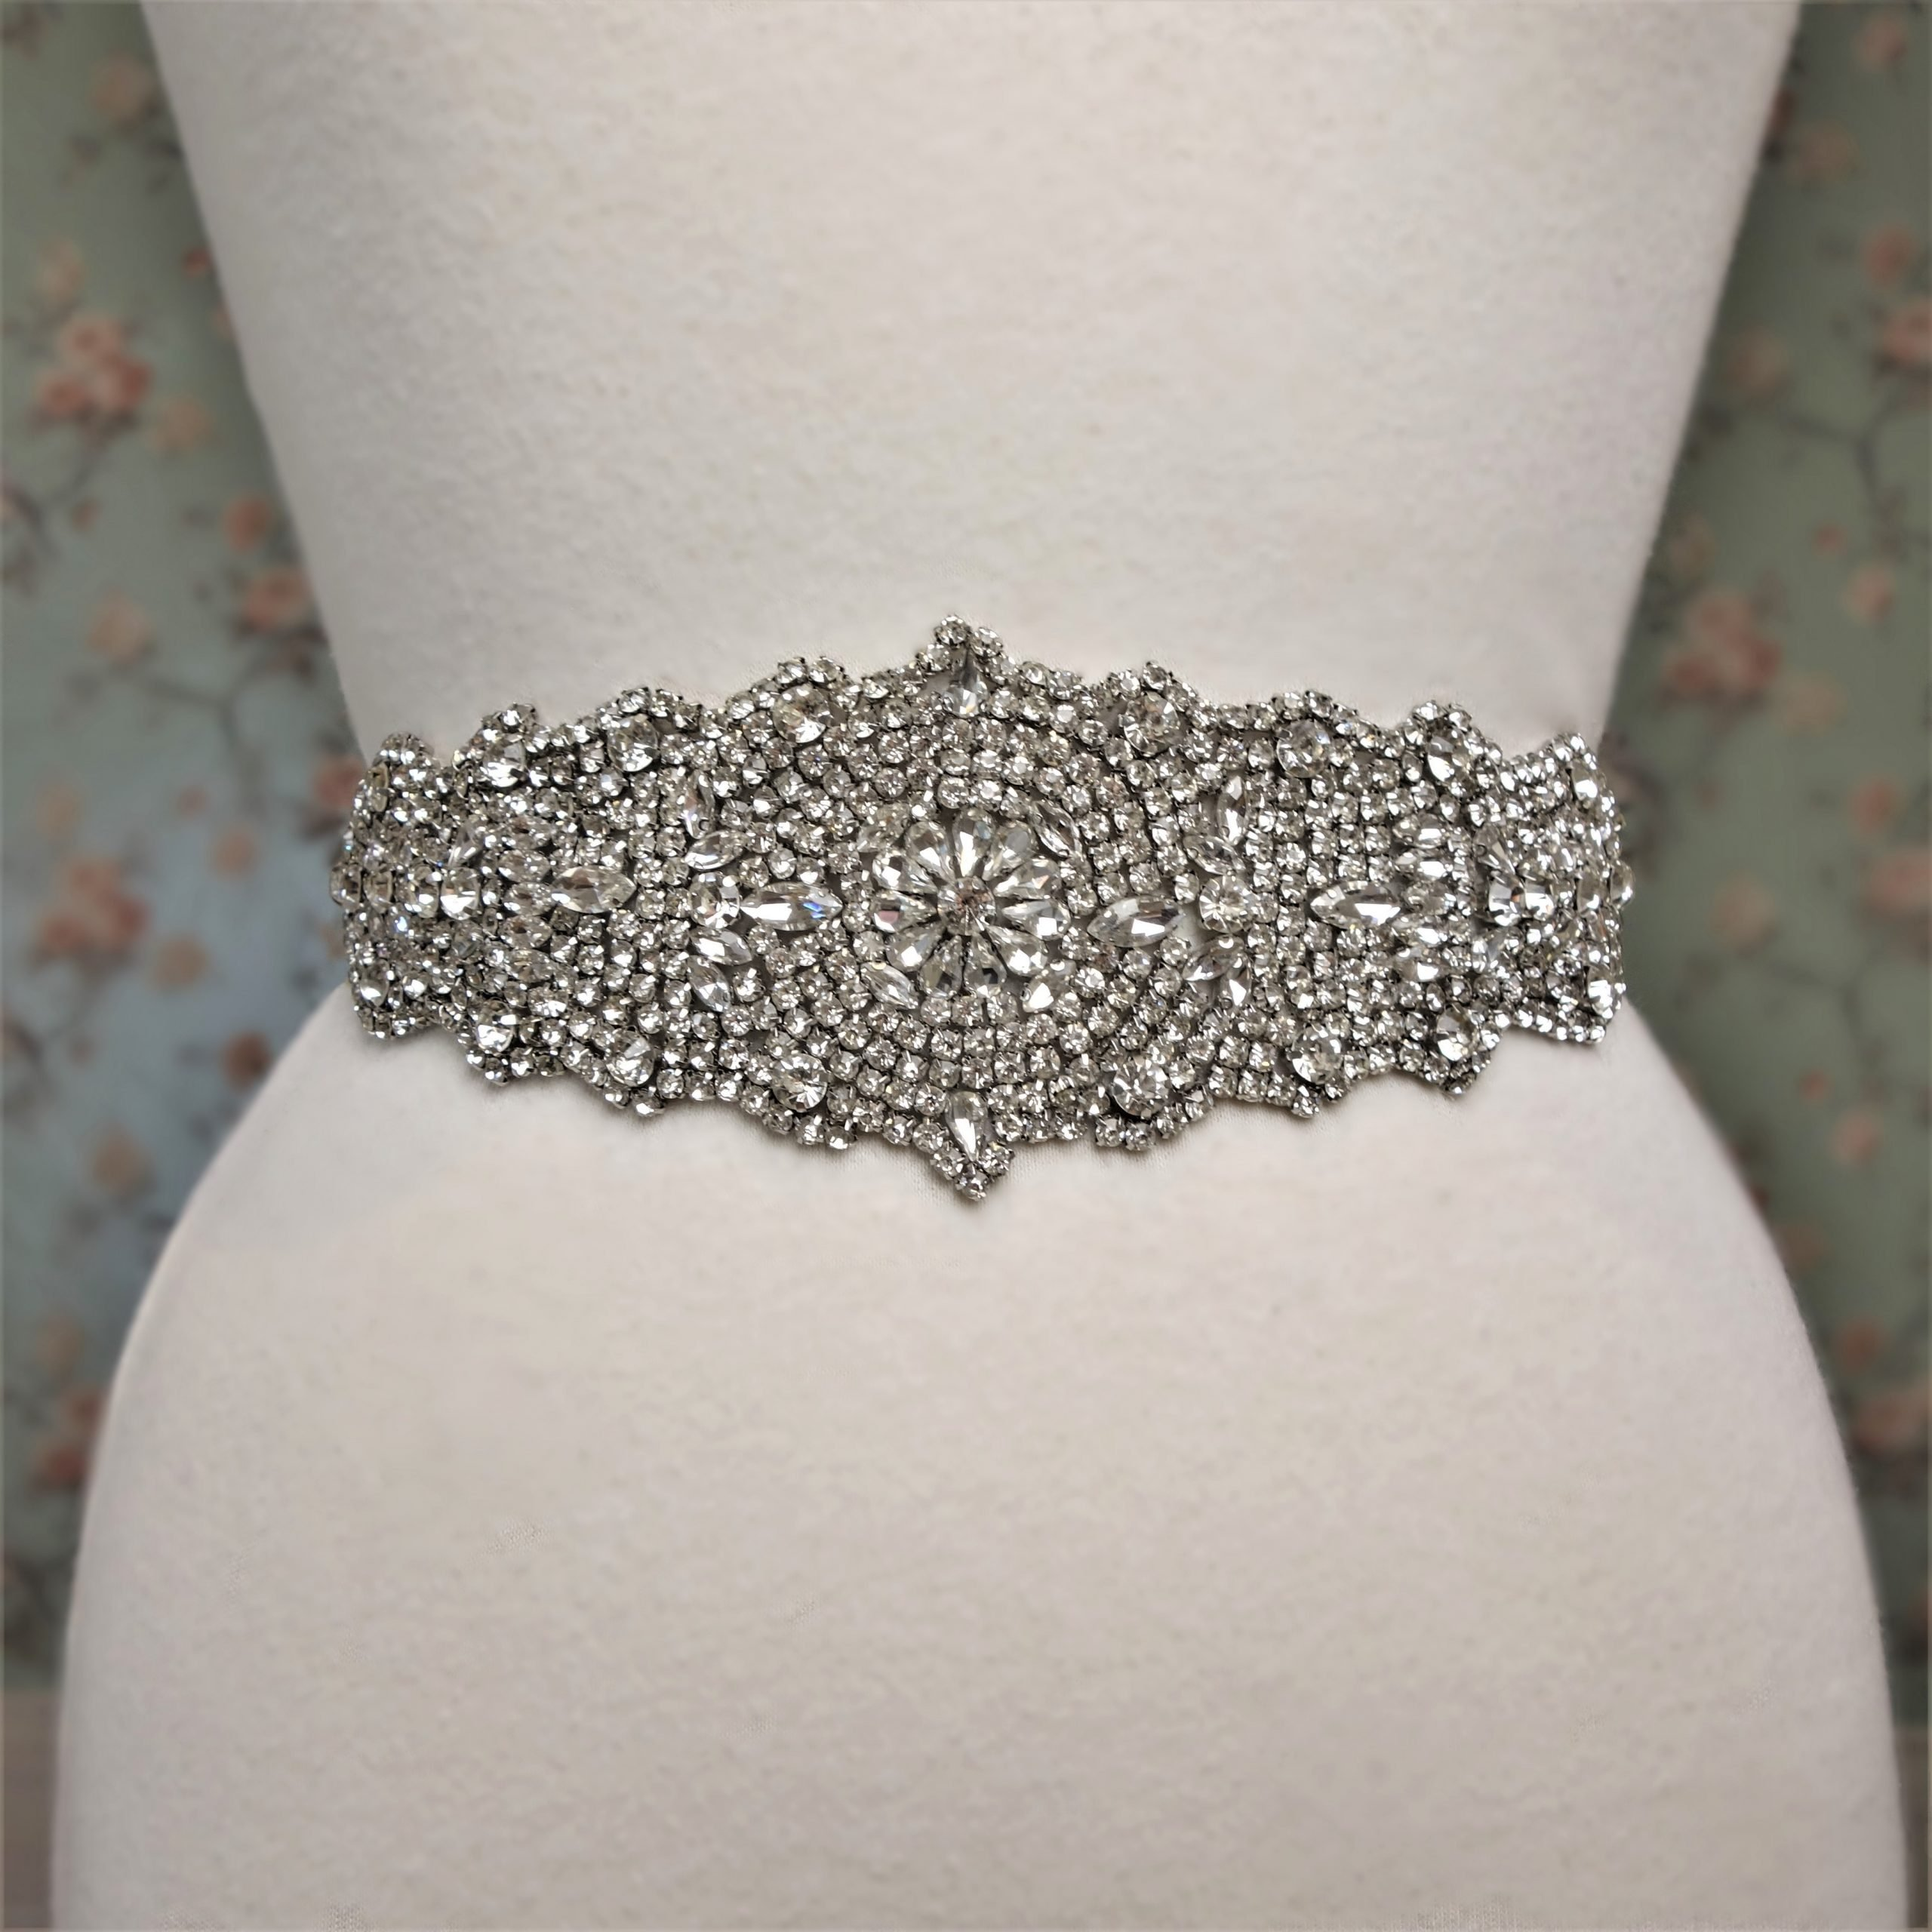 Antique Rhinestone Belt